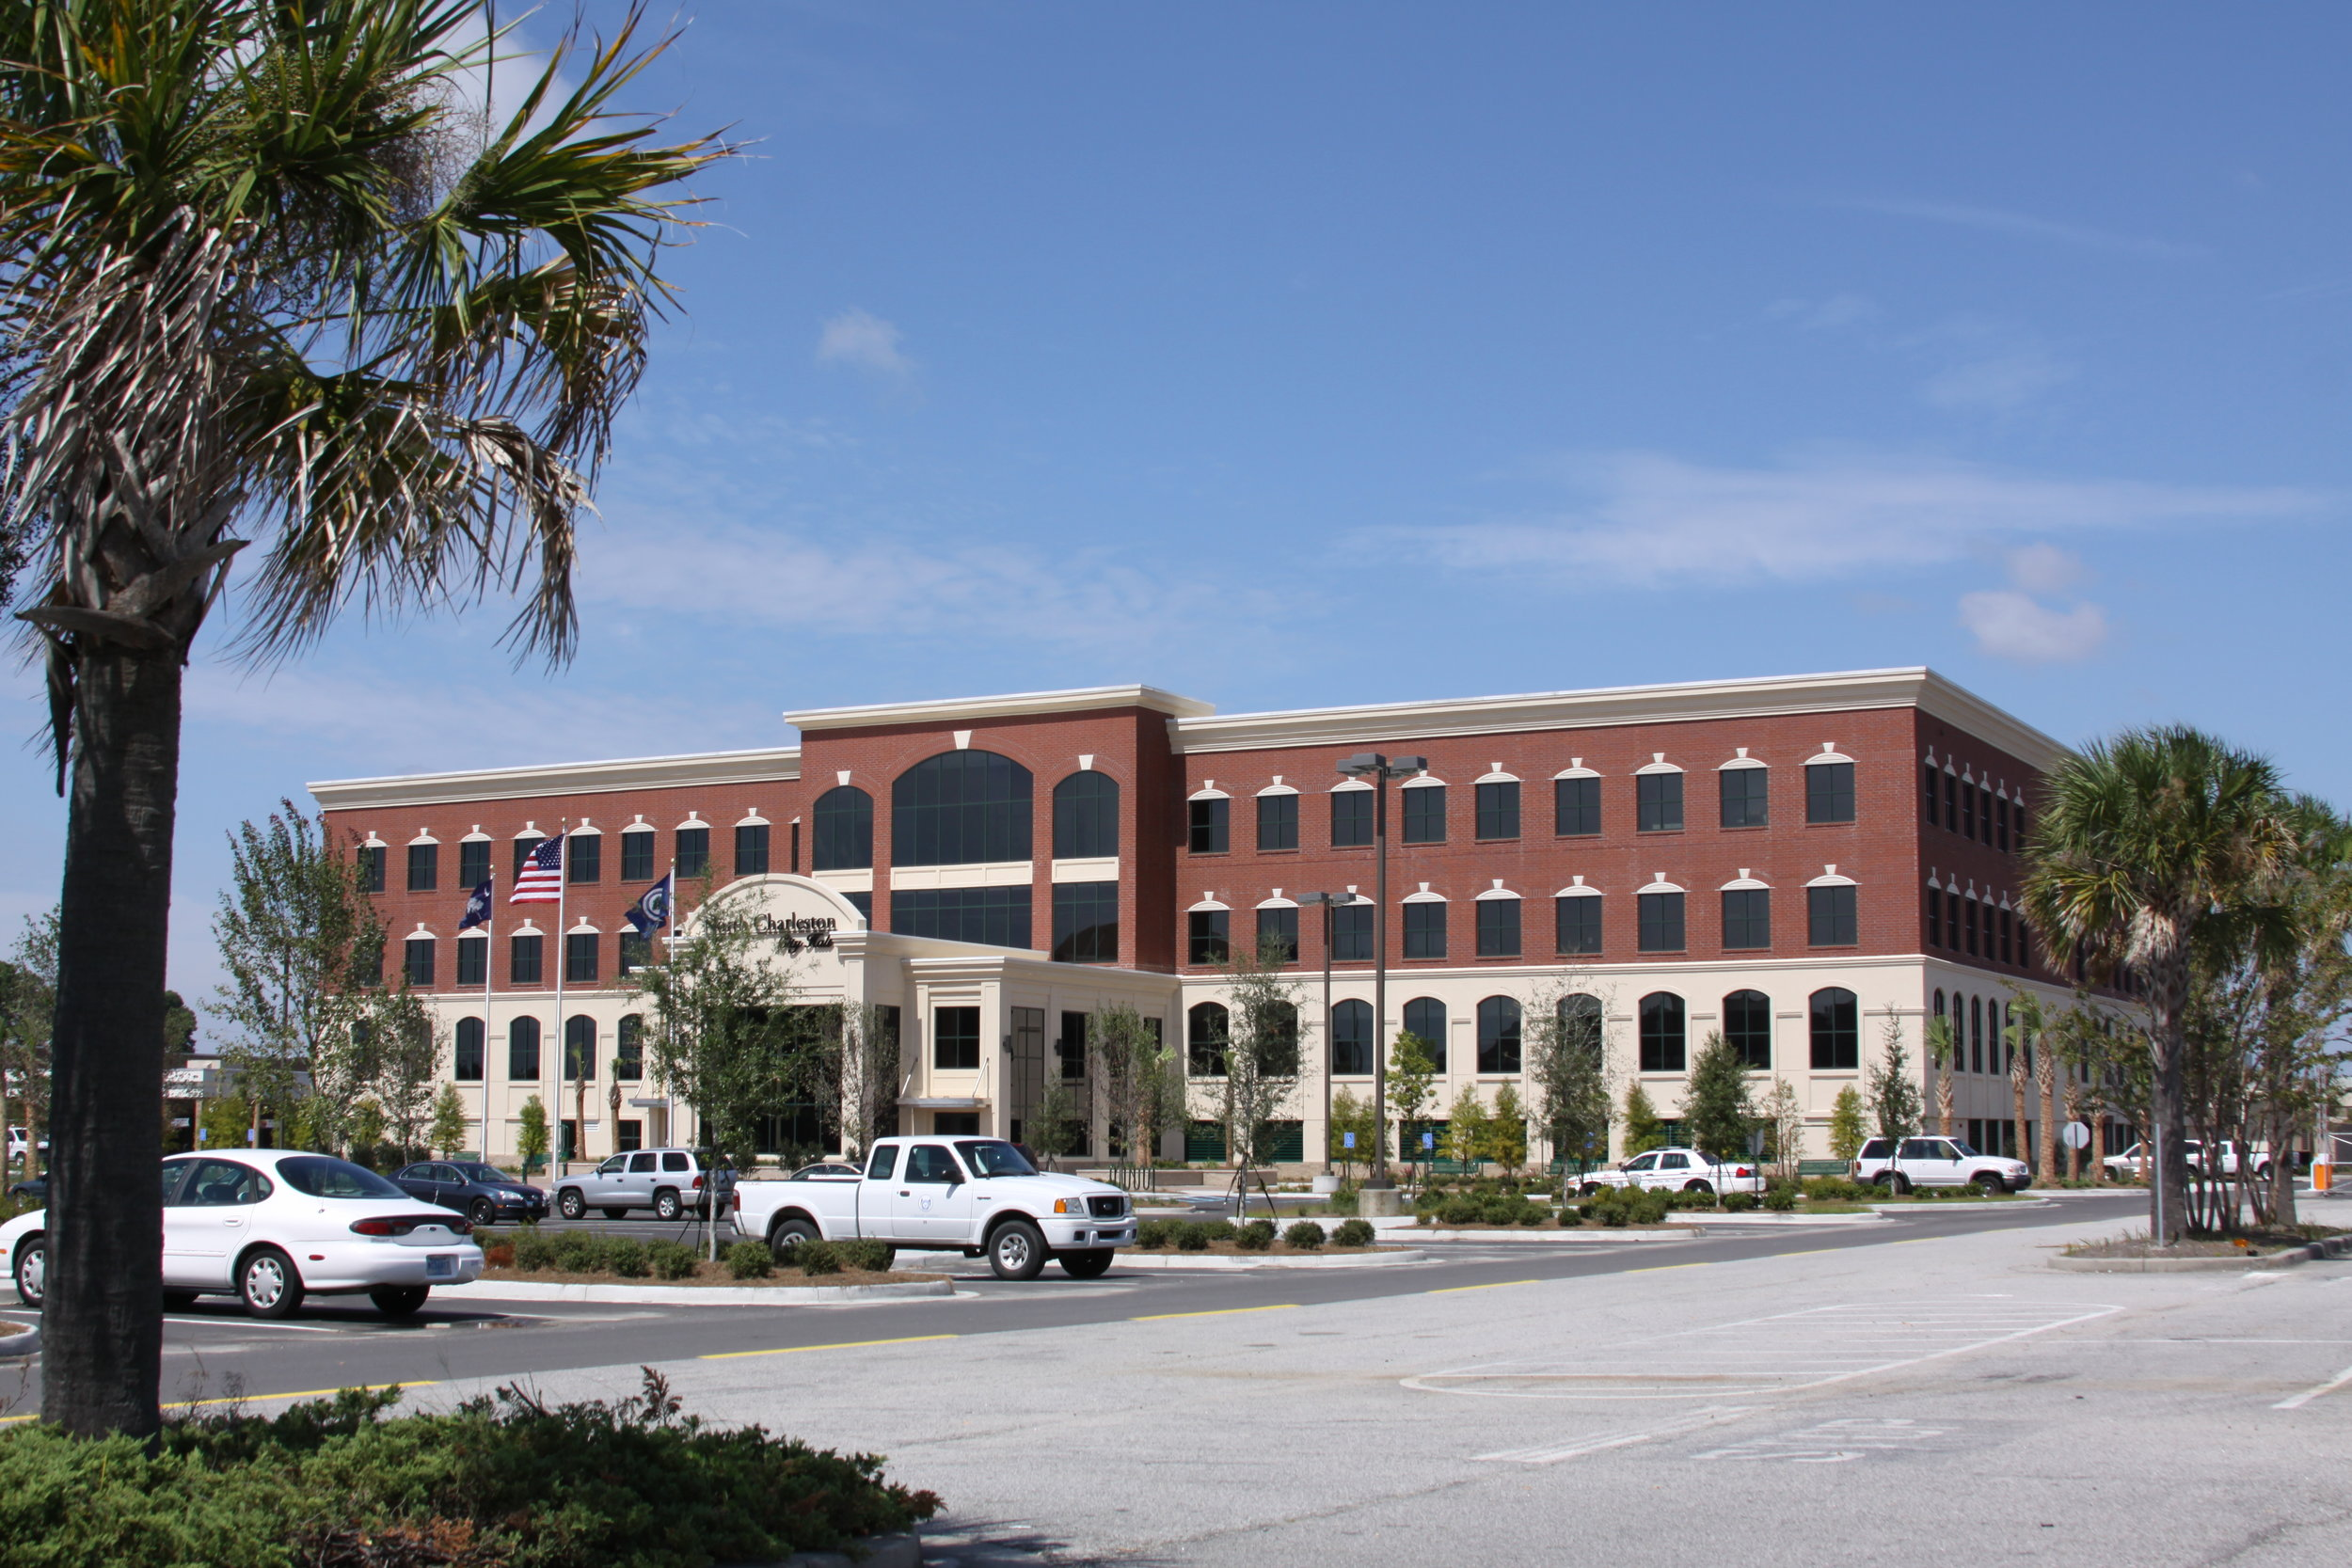 City_of_North_Charleston_city_hall.JPG